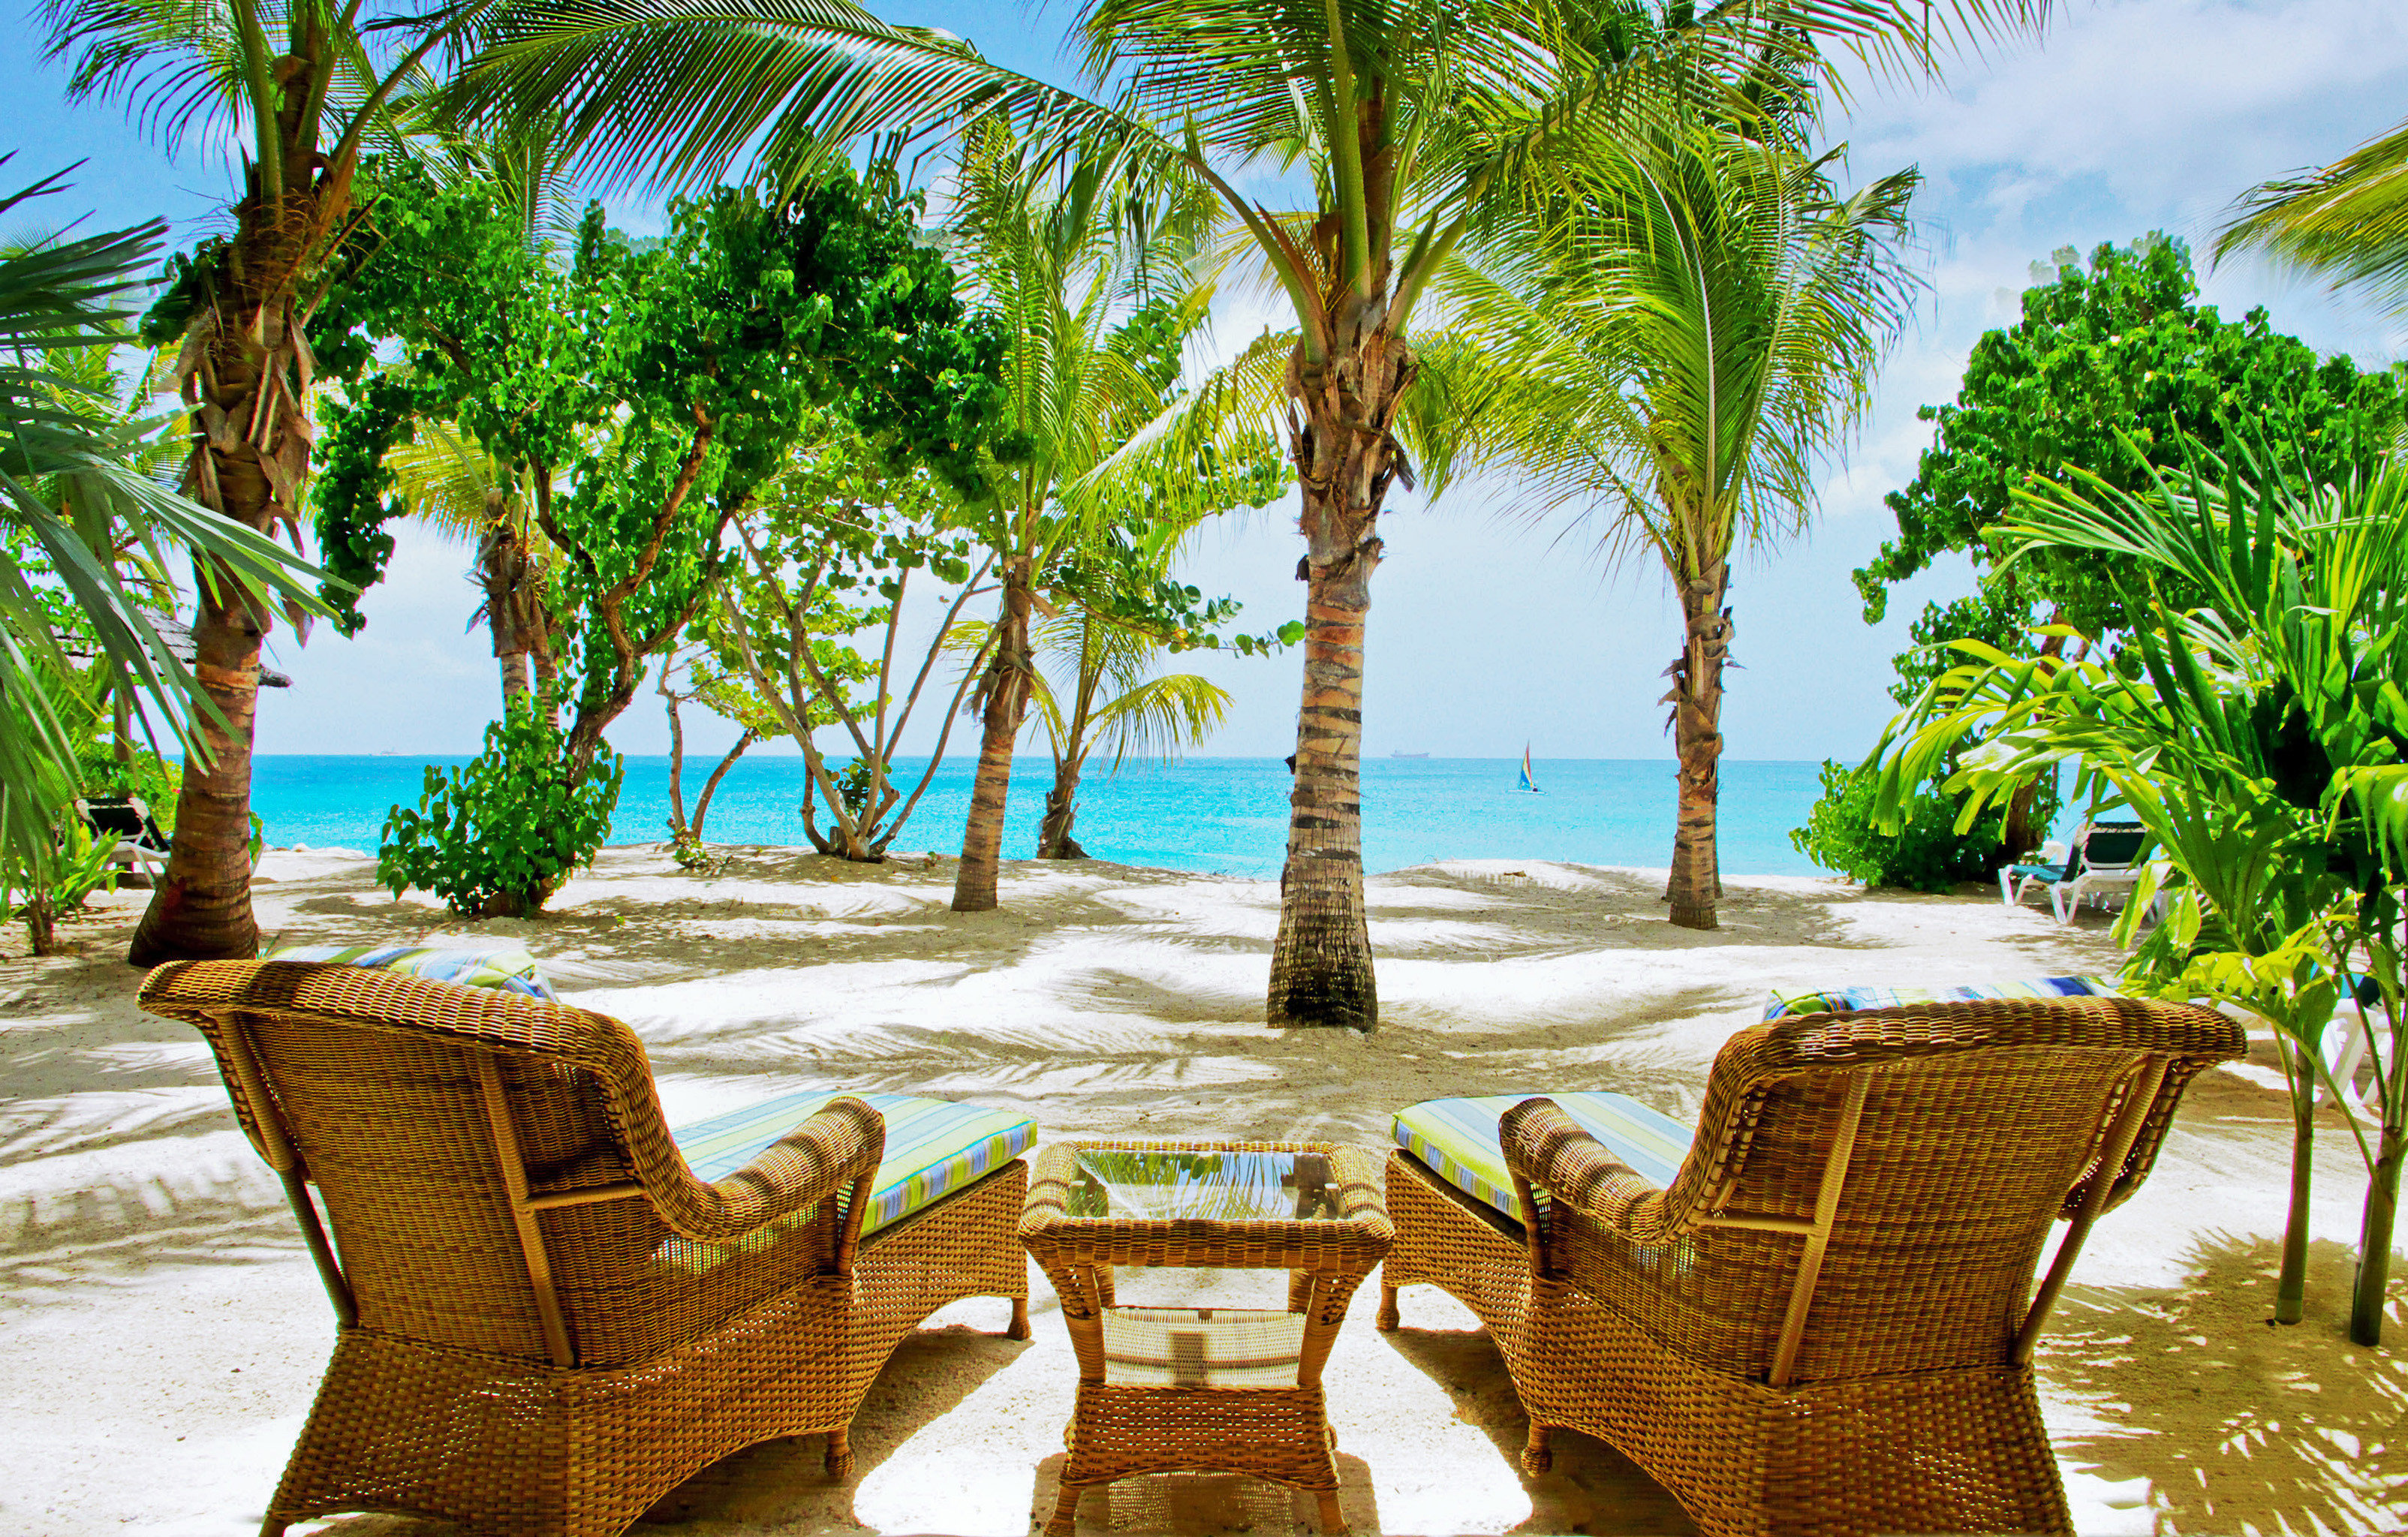 Adult-only All-inclusive Beach Beachfront Luxury Play Resort Scenic views tree leisure caribbean arecales tropics palm family plant palm Jungle shade